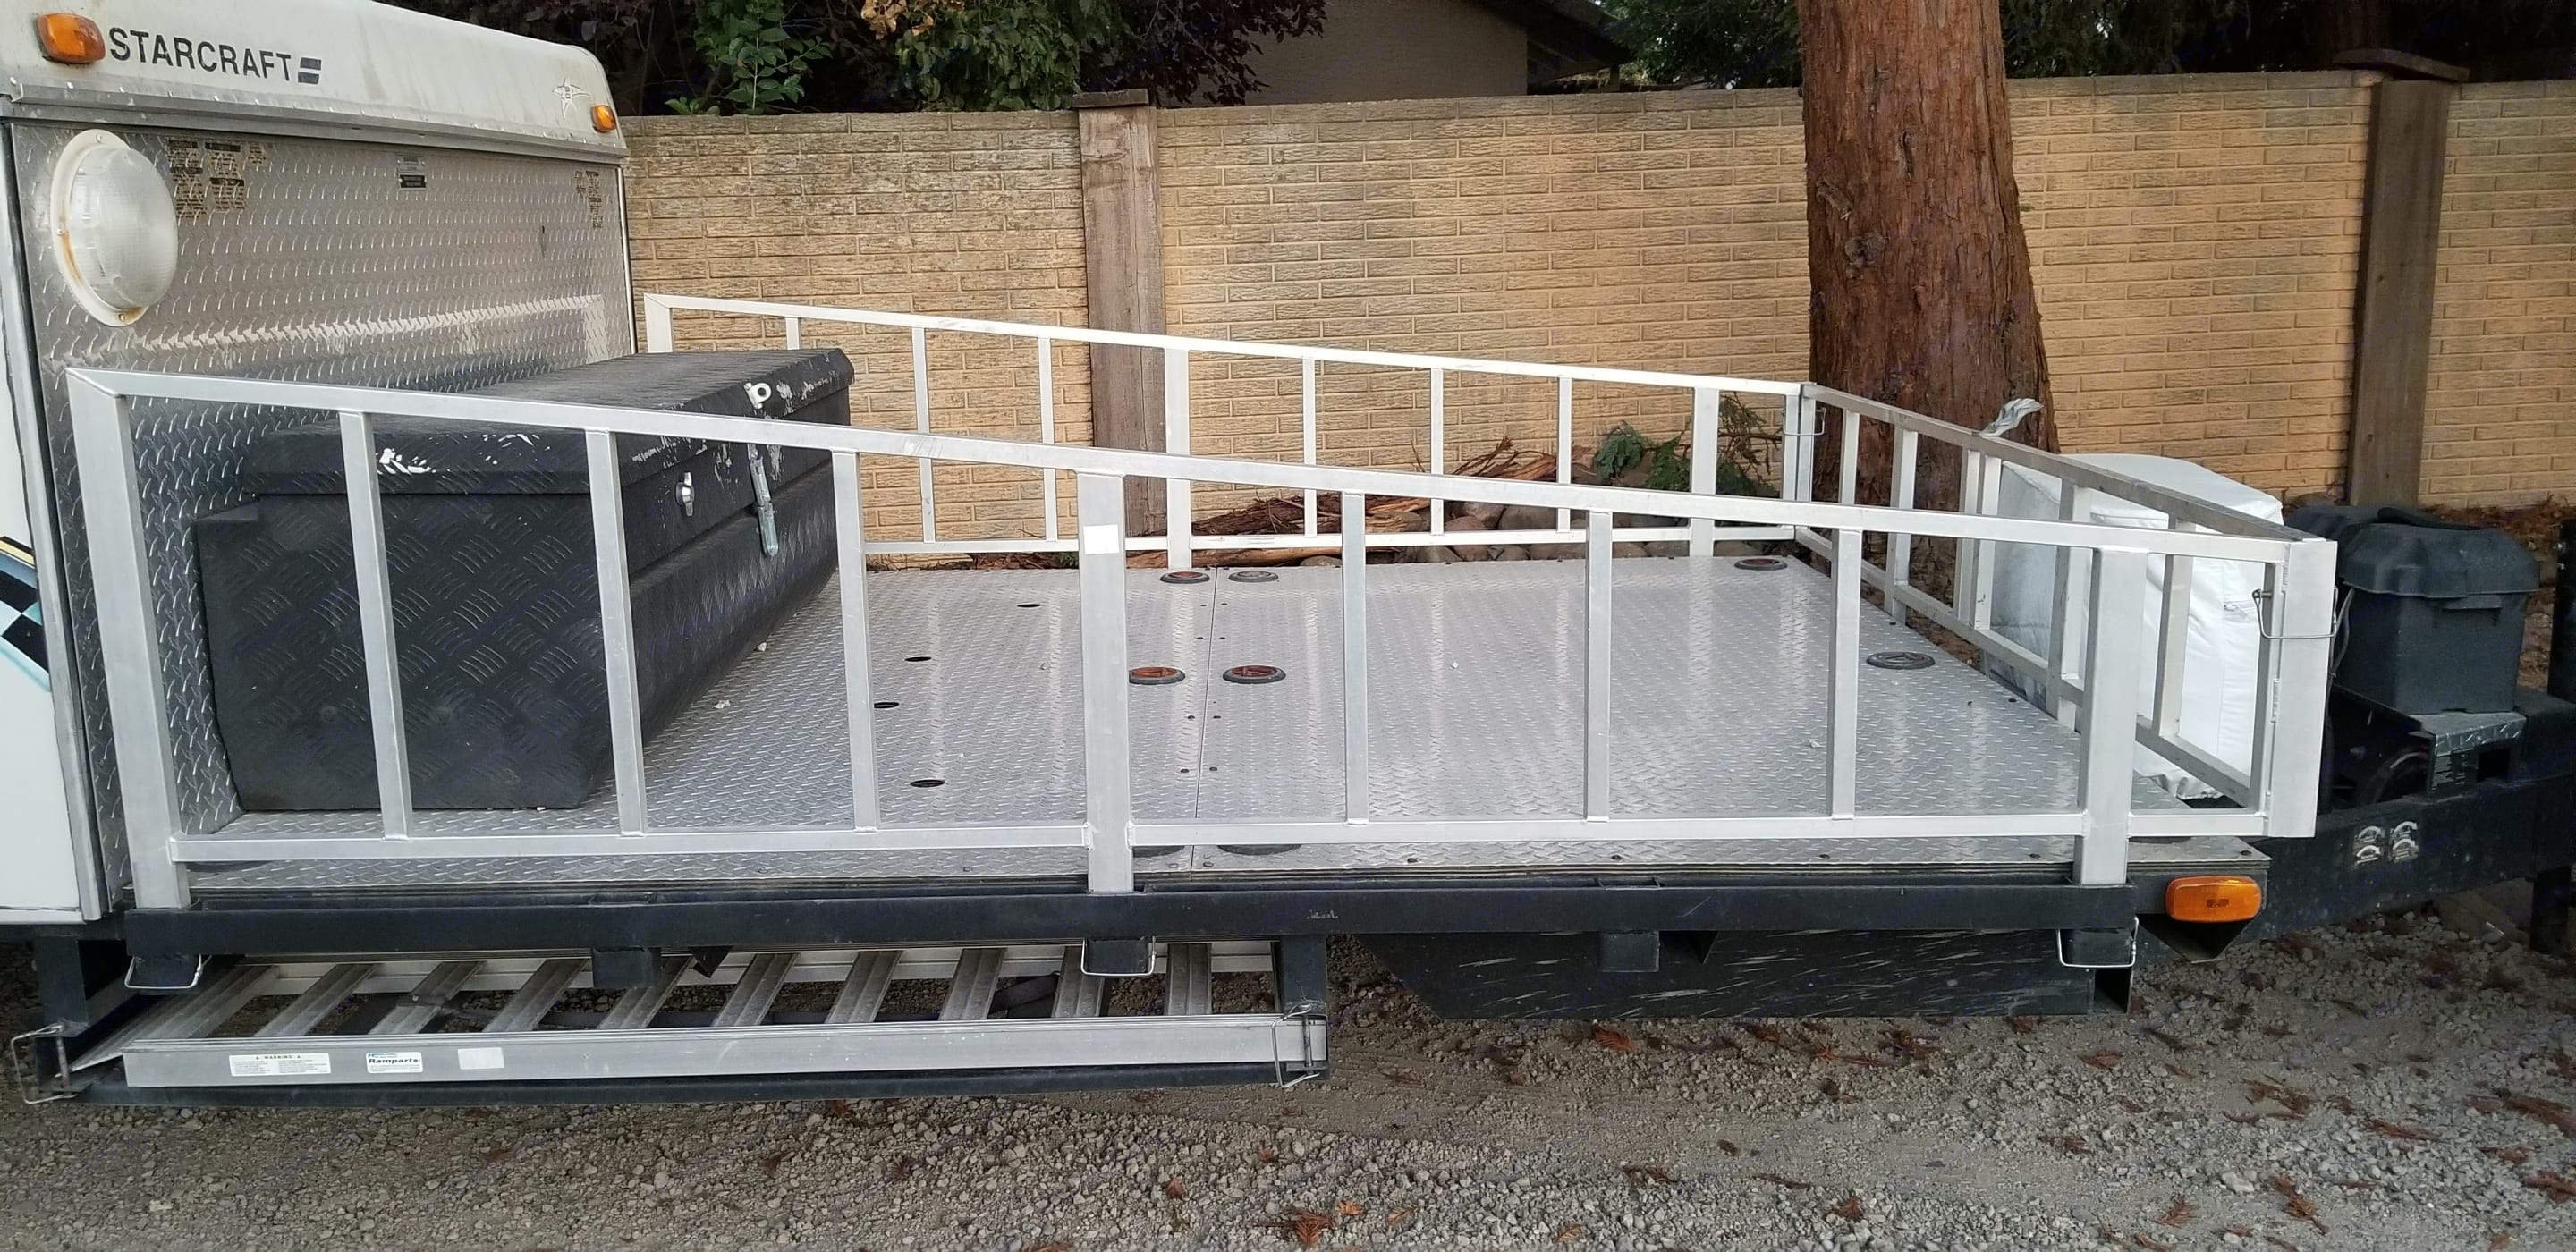 Large loading area with ramp for ATVs, dirtbikes, etc.. Starcraft 36RT 2008